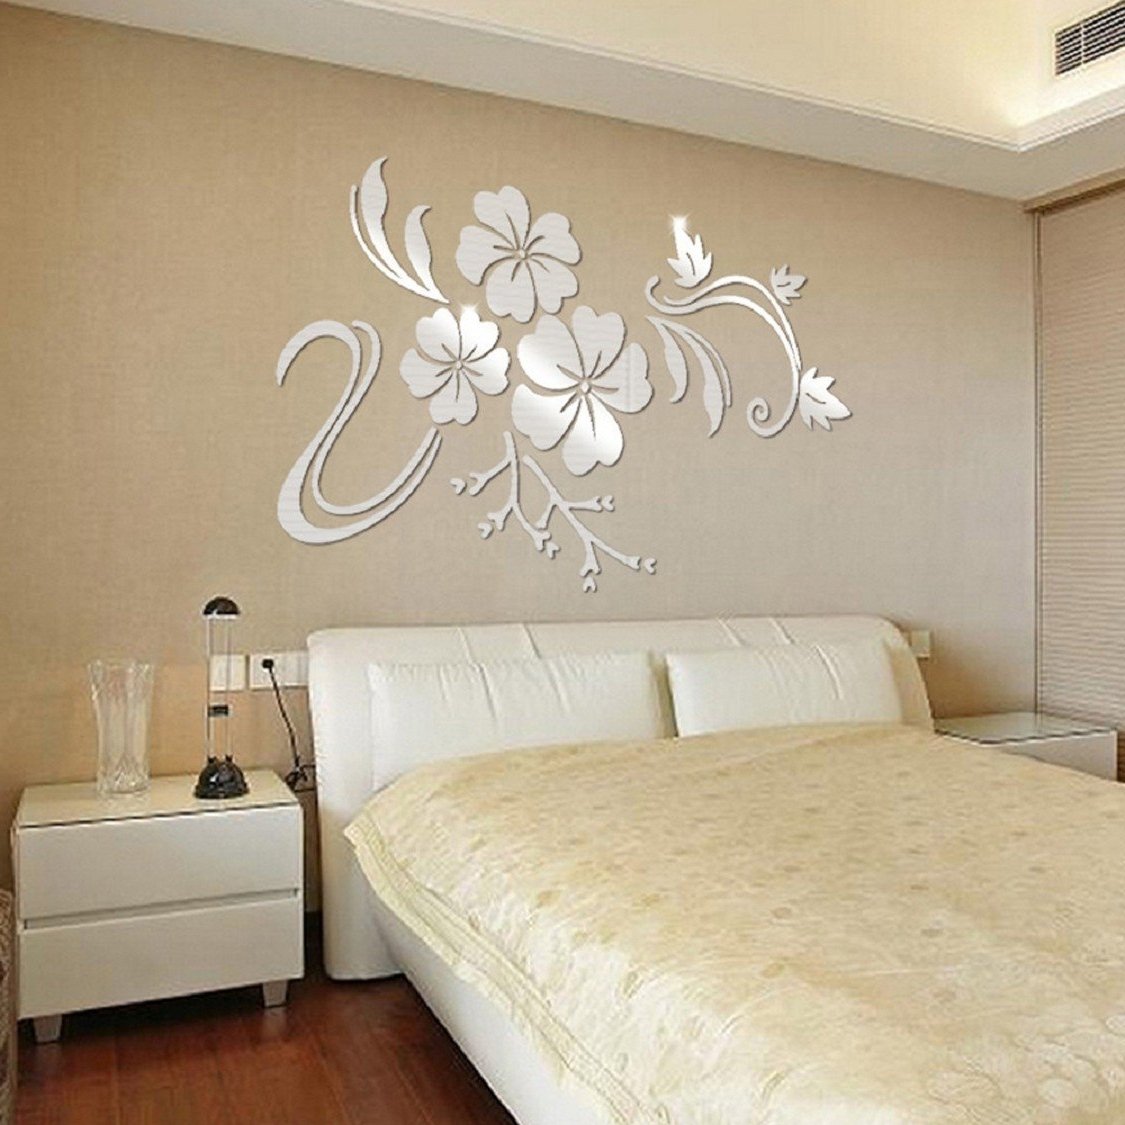 Widely Used Flowers Wall Accents Inside Ikevan 1Set Acrylic Art 3D Mirror Flower Wall Stickers Diy Home (View 15 of 15)